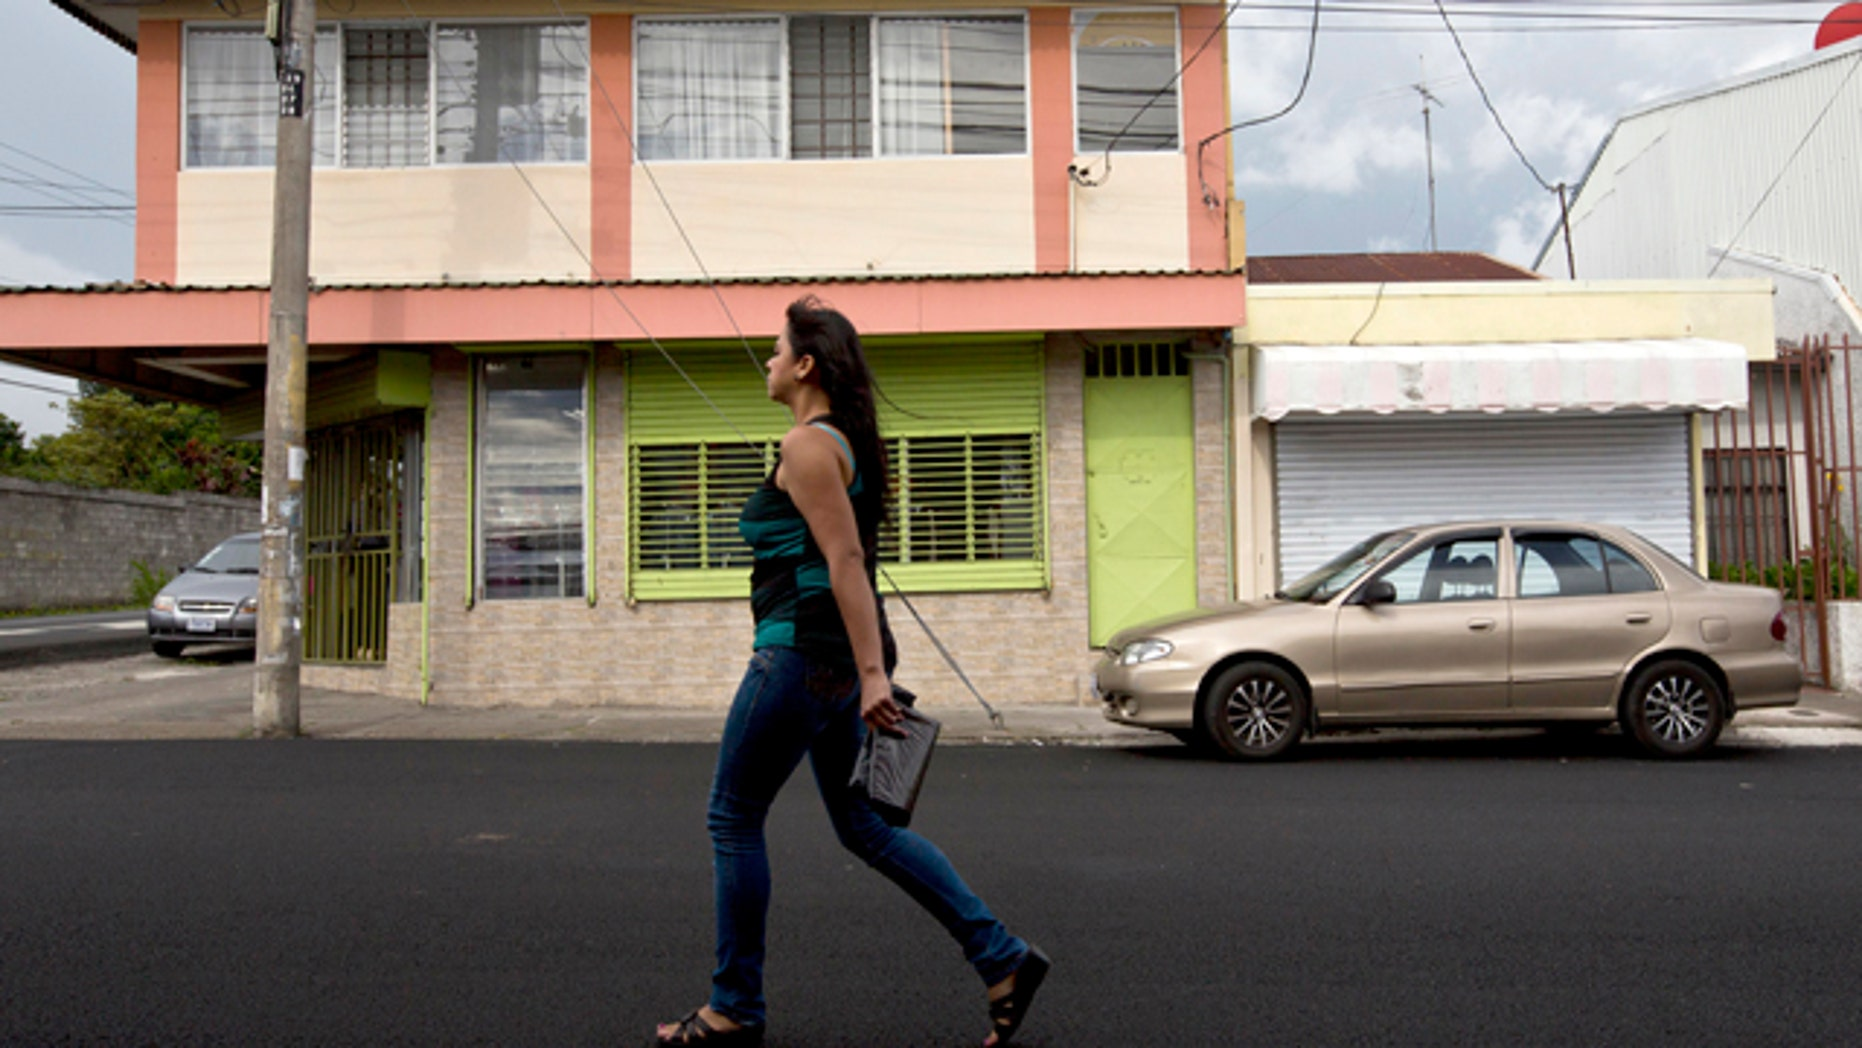 July 9, 2014: A woman walks in front of the building that once housed the human rights group Fundacion Operacion Gaya Internacional in Heredia, Costa Rica. (AP Photo/Esteban Felix)